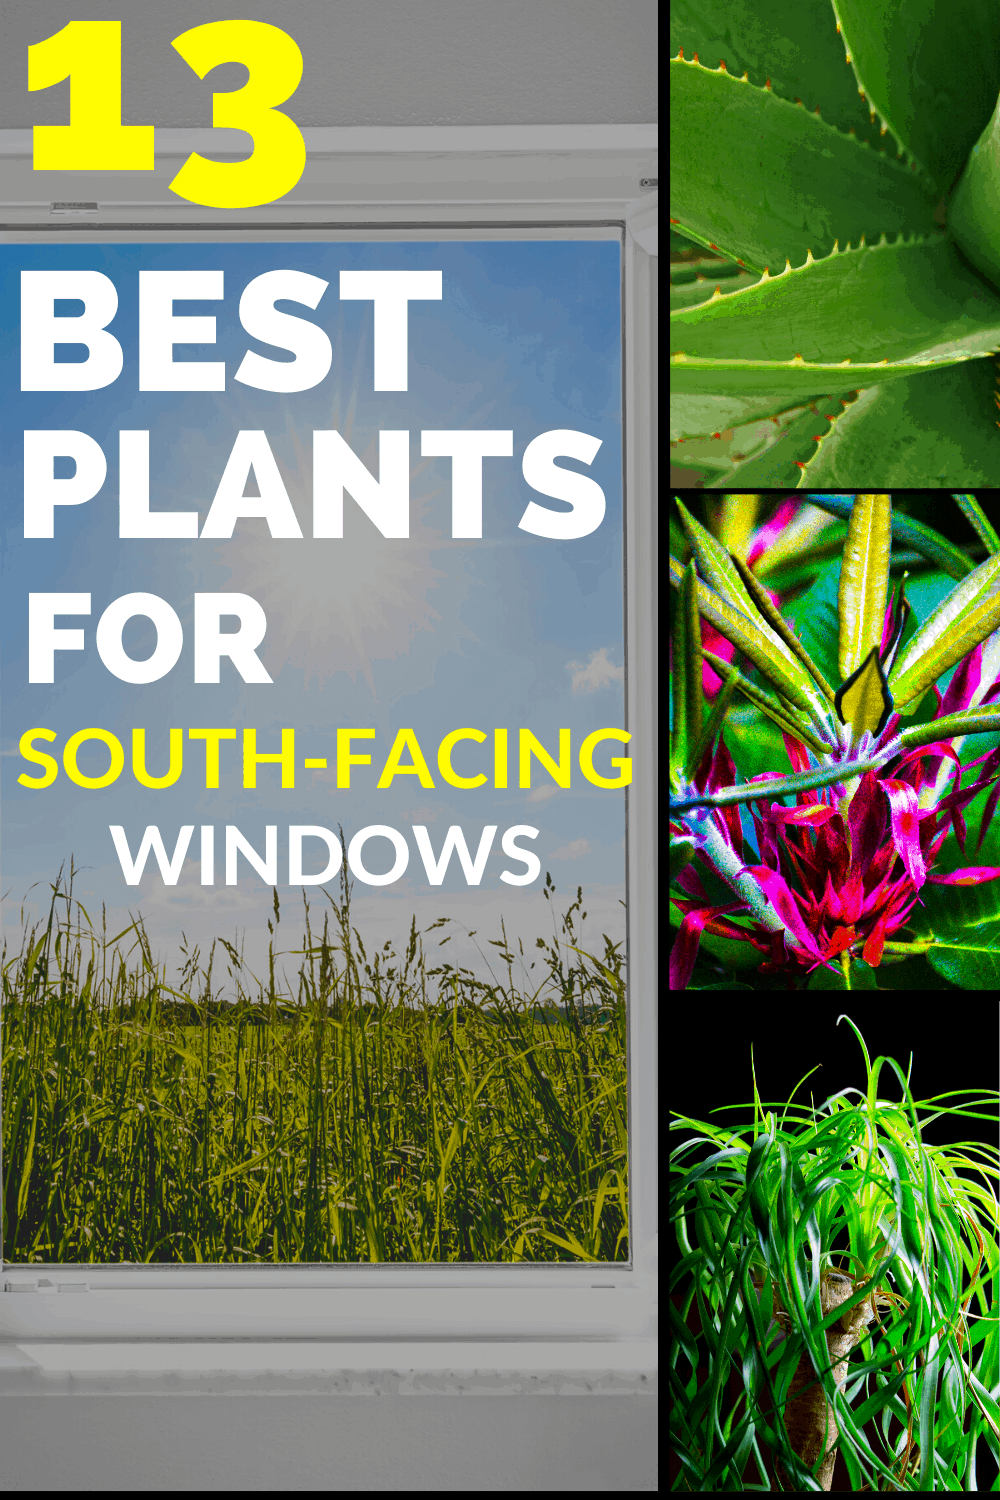 13 Best Plants for South-Facing Windows